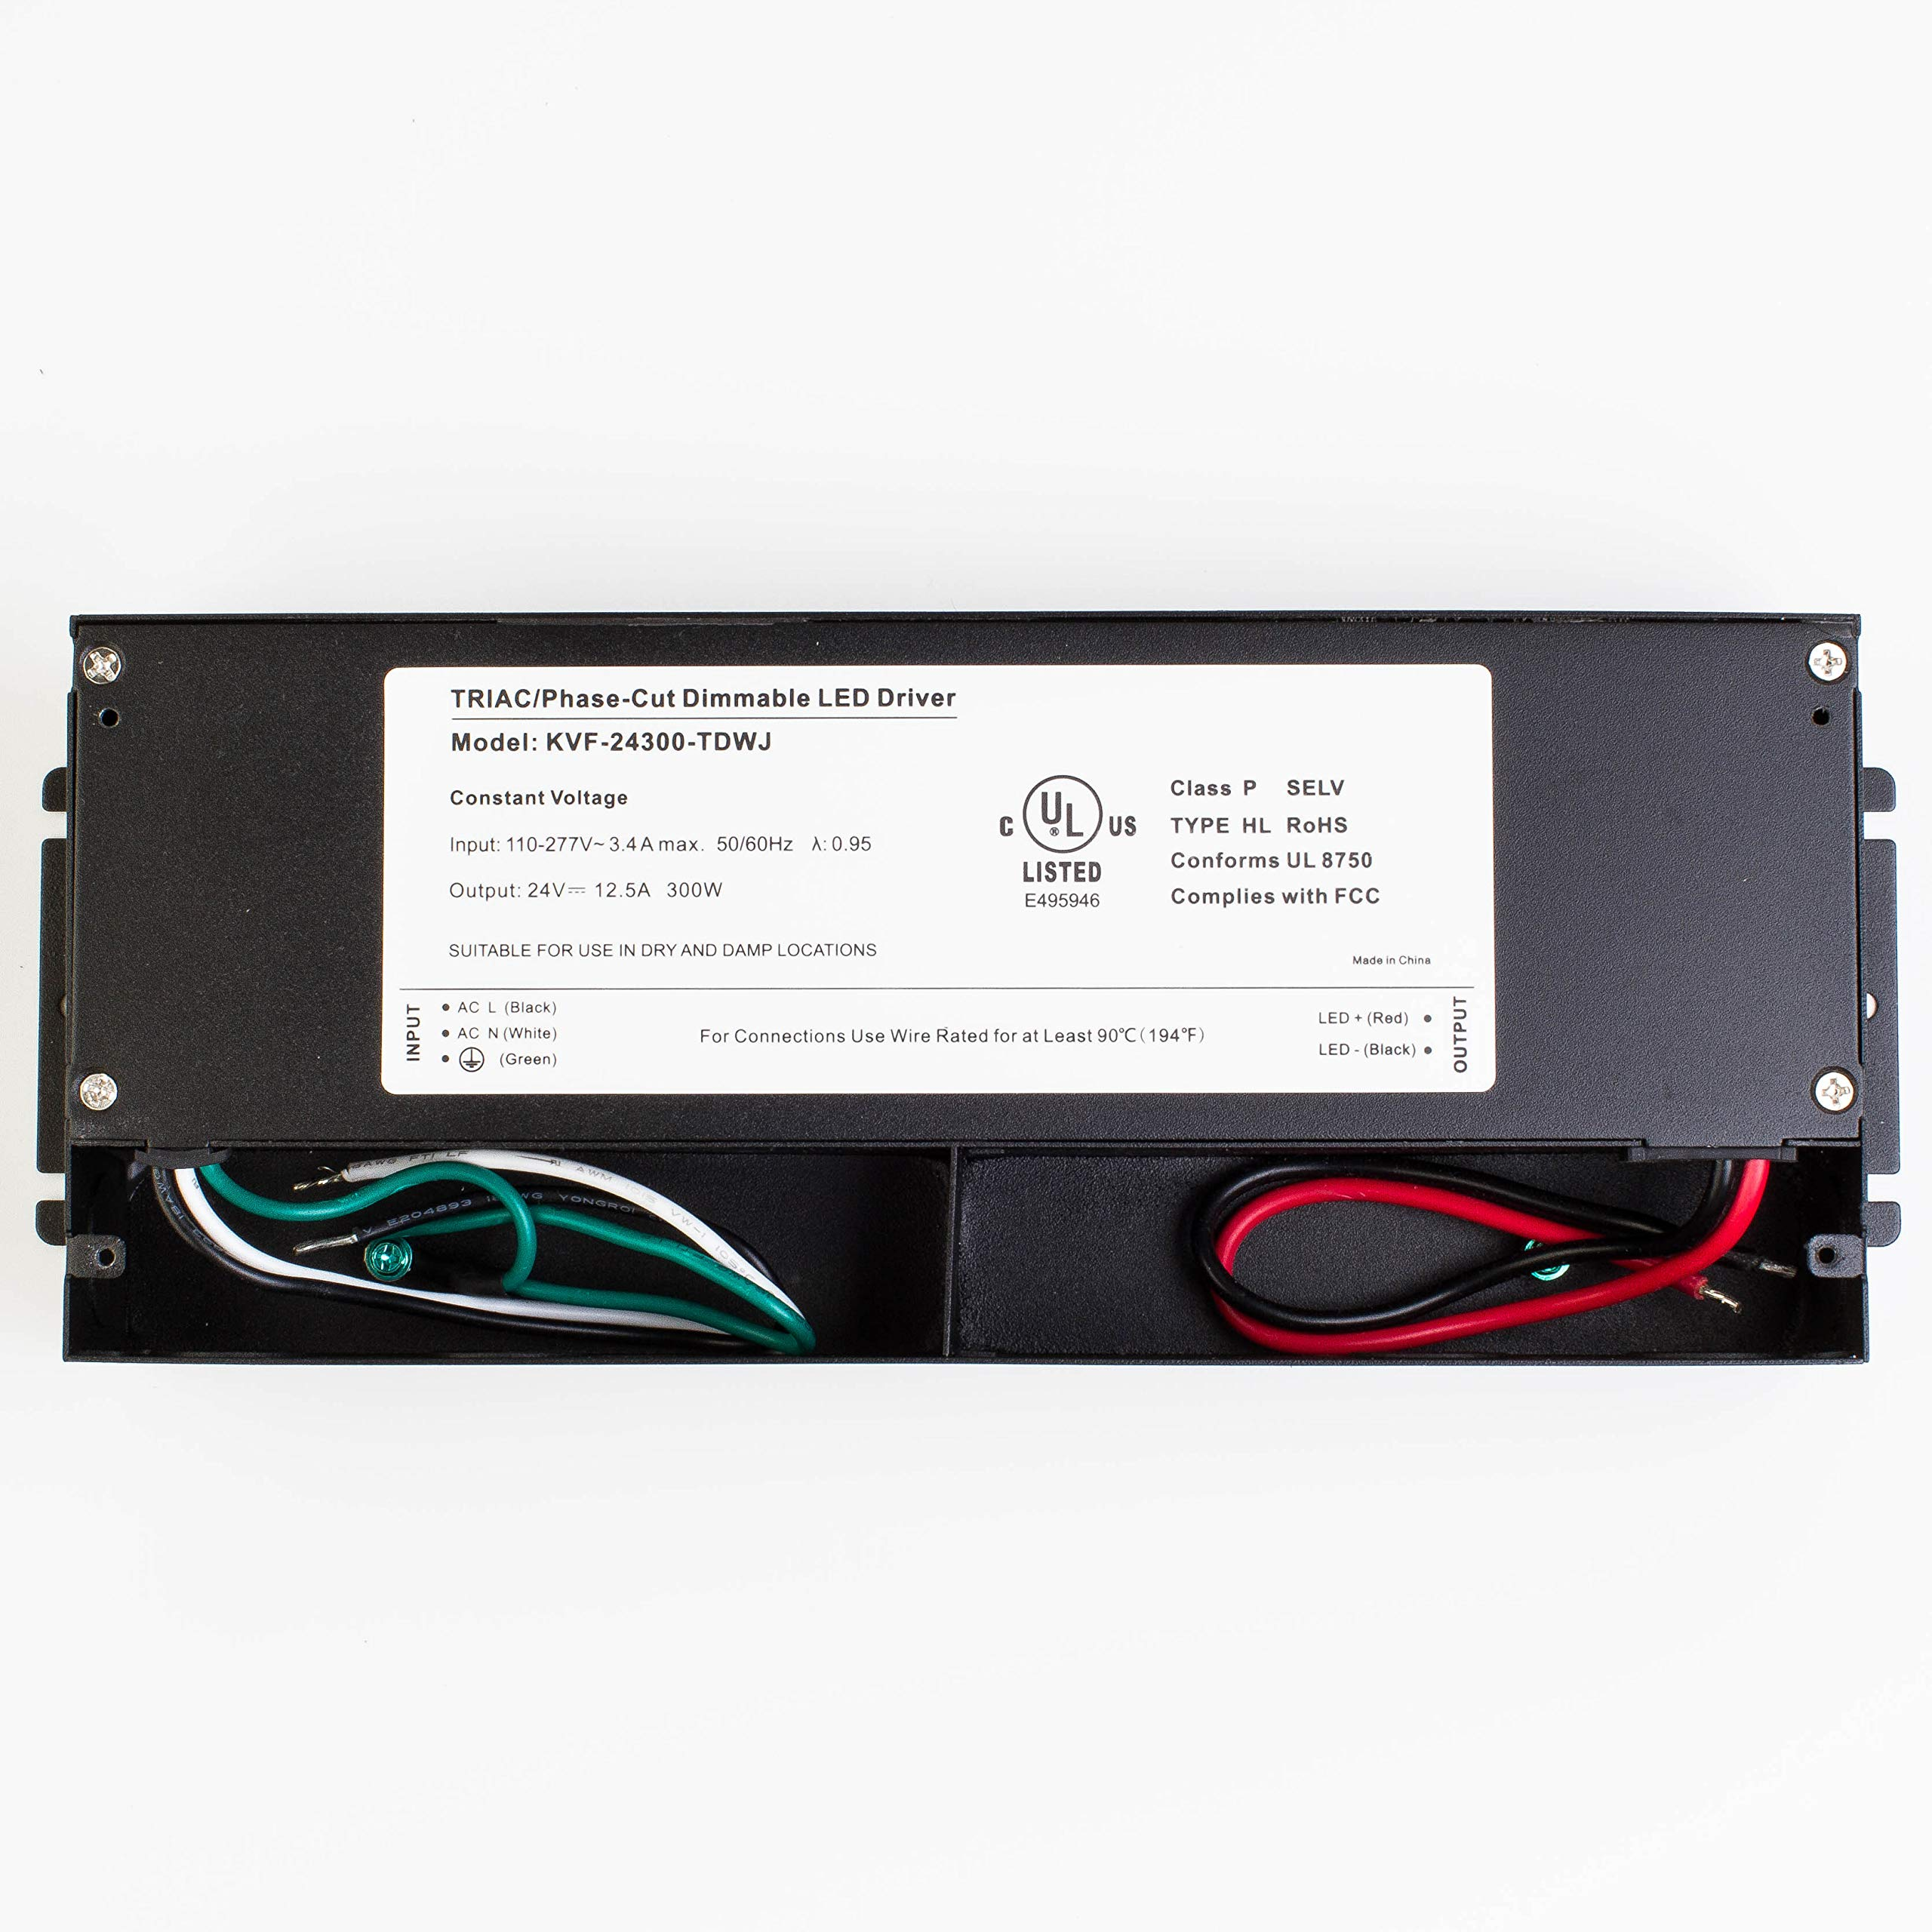 LEDupdates 24v UL Listed 300w Triac Dimmable Driver 110v - 277V AC to DC Transformer Constant Voltage Power Supply for LED Strip light Control by AC Wall Dimmer (24v 300w) by LEDUPDATES (Image #9)